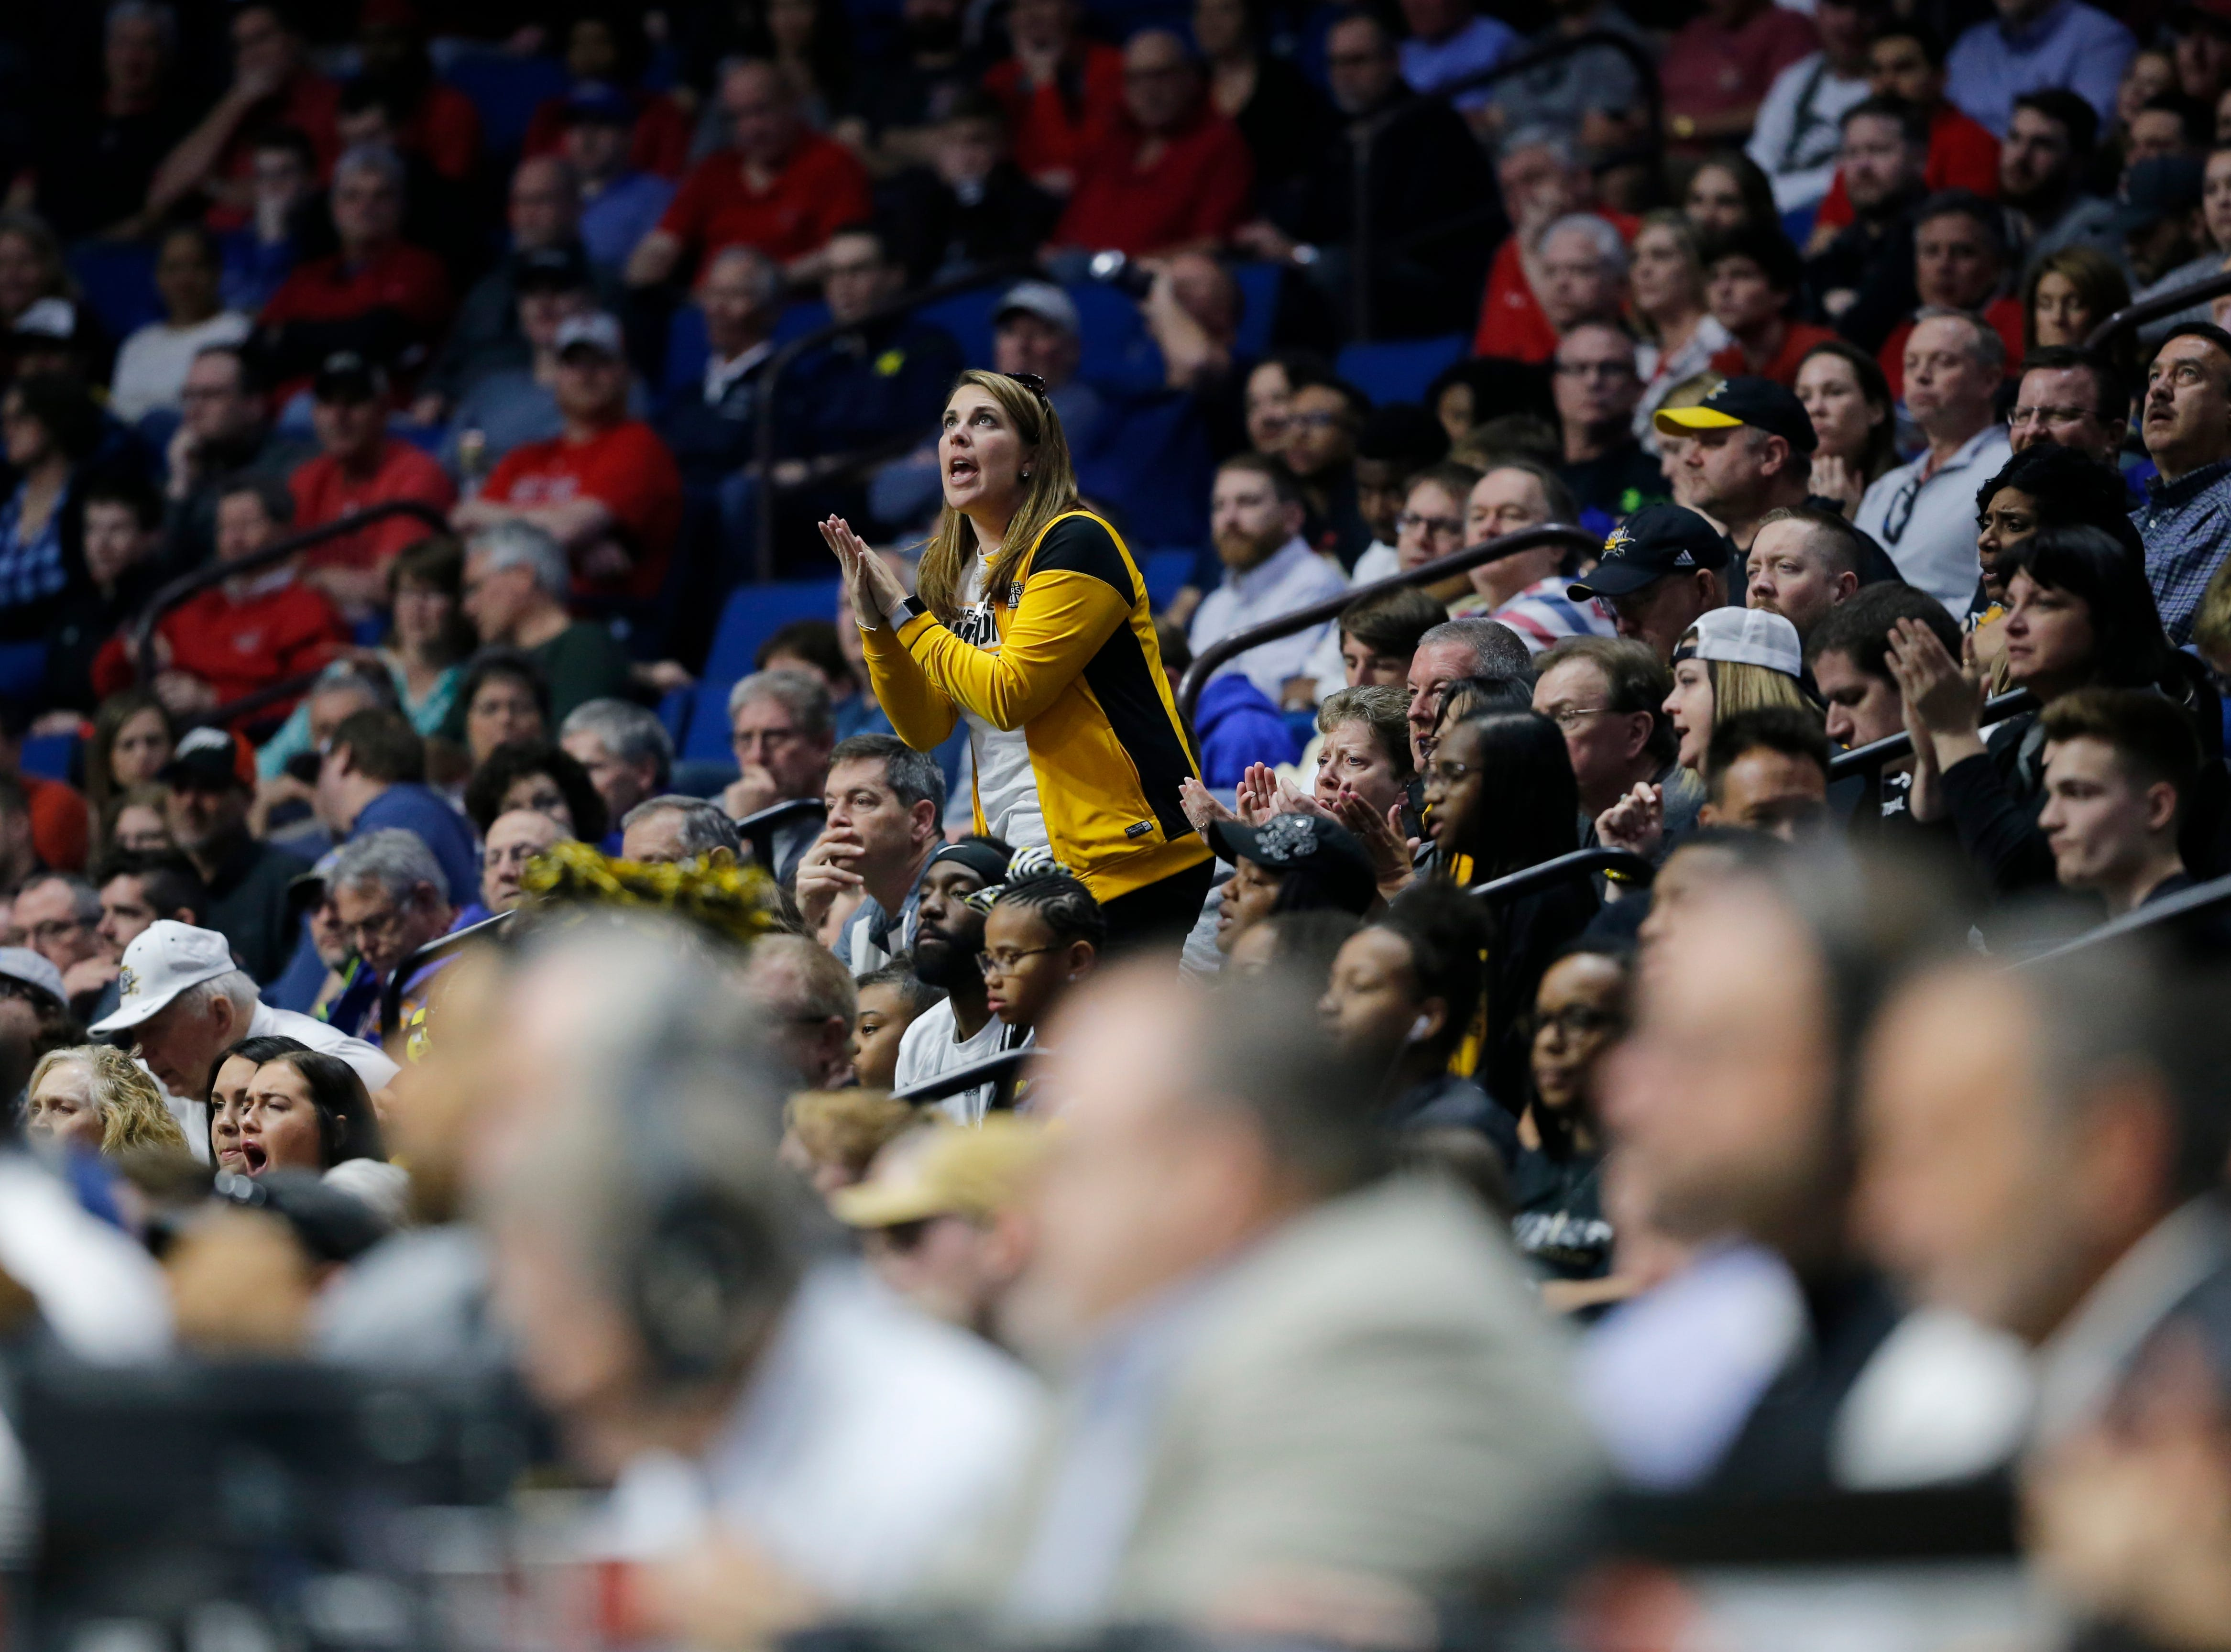 Northern Kentucky Norse fans cheer in the first half of the NCAA Tournament First Round game between the 14-seeded Northern Kentucky Norse and the 3-seeded Texas Tech Red Raiders the BOK Center in downtown Tulsa on Friday, March 22, 2019. Texas Tech led 30-26 at halftime.